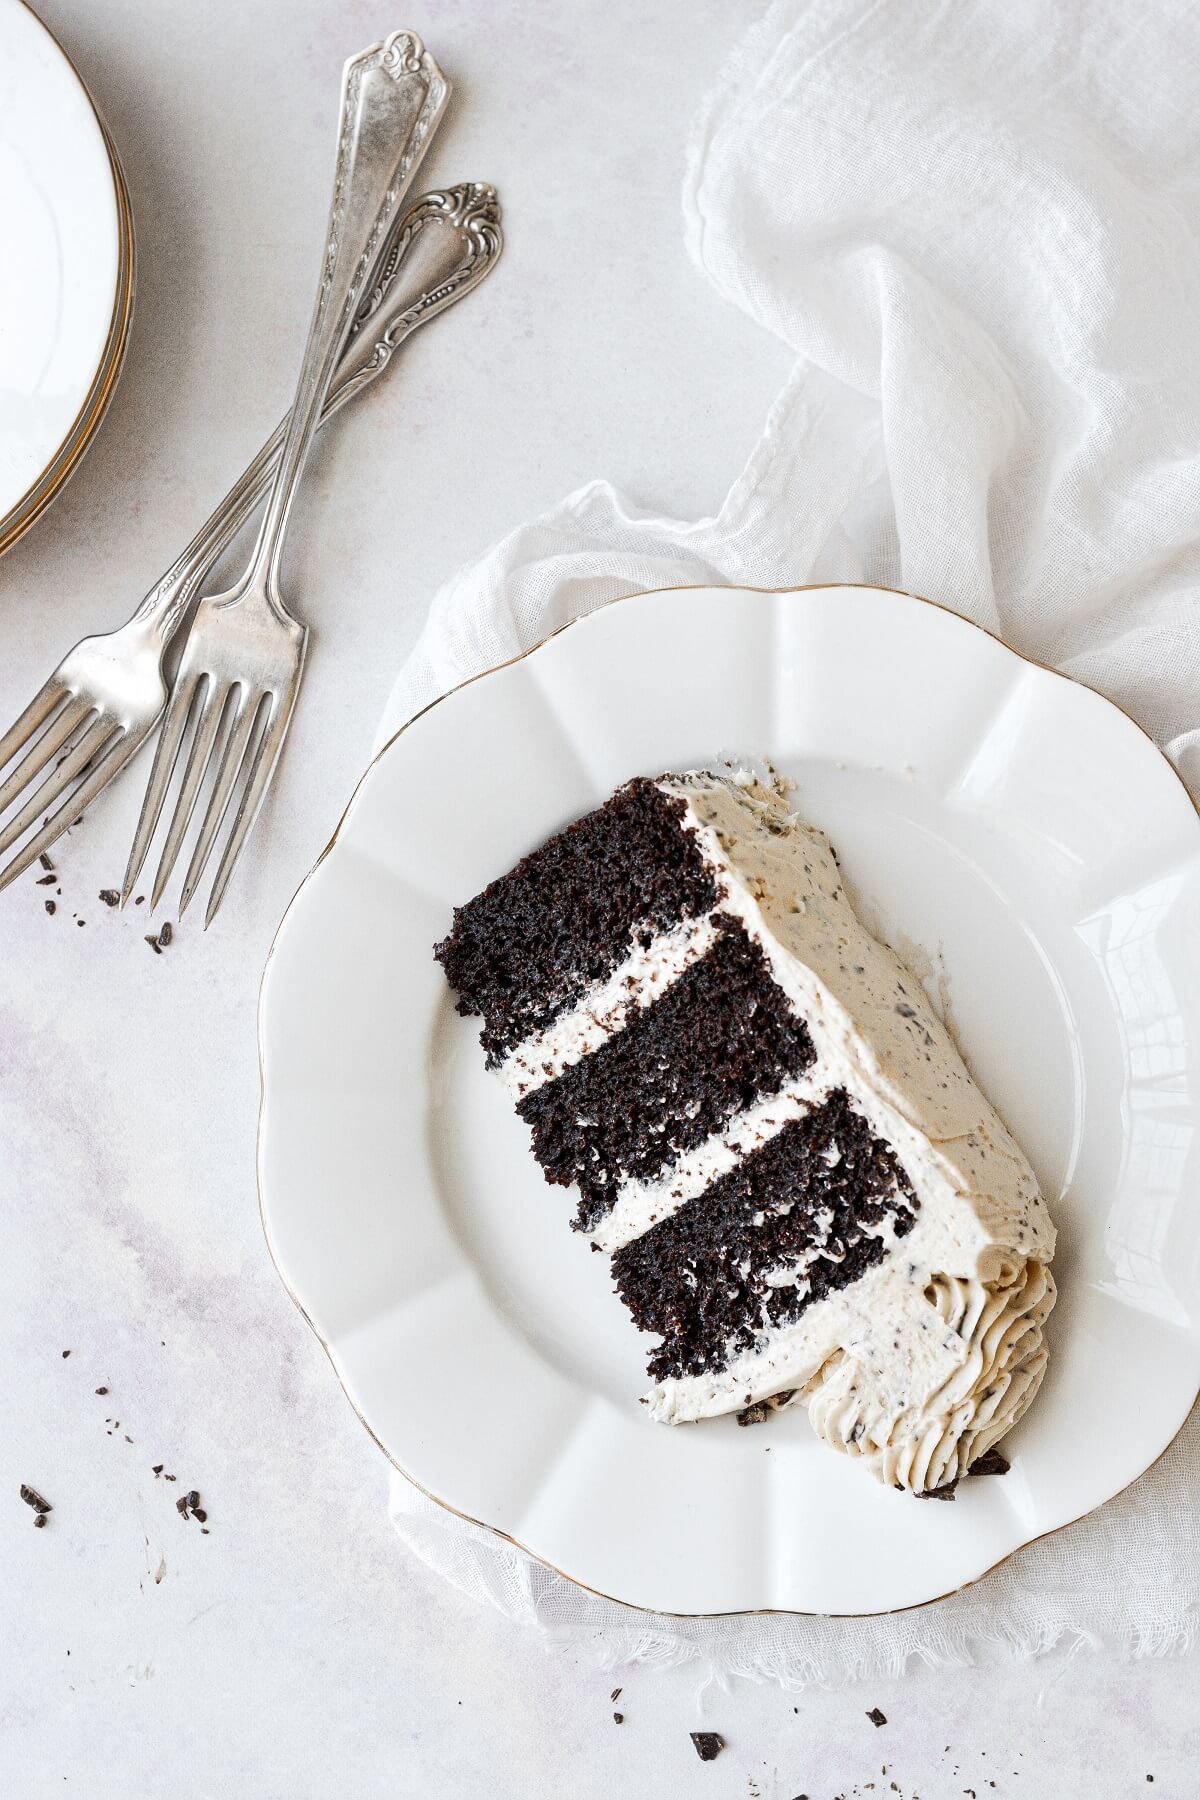 A slice of chocolate cake with peanut butter buttercream.